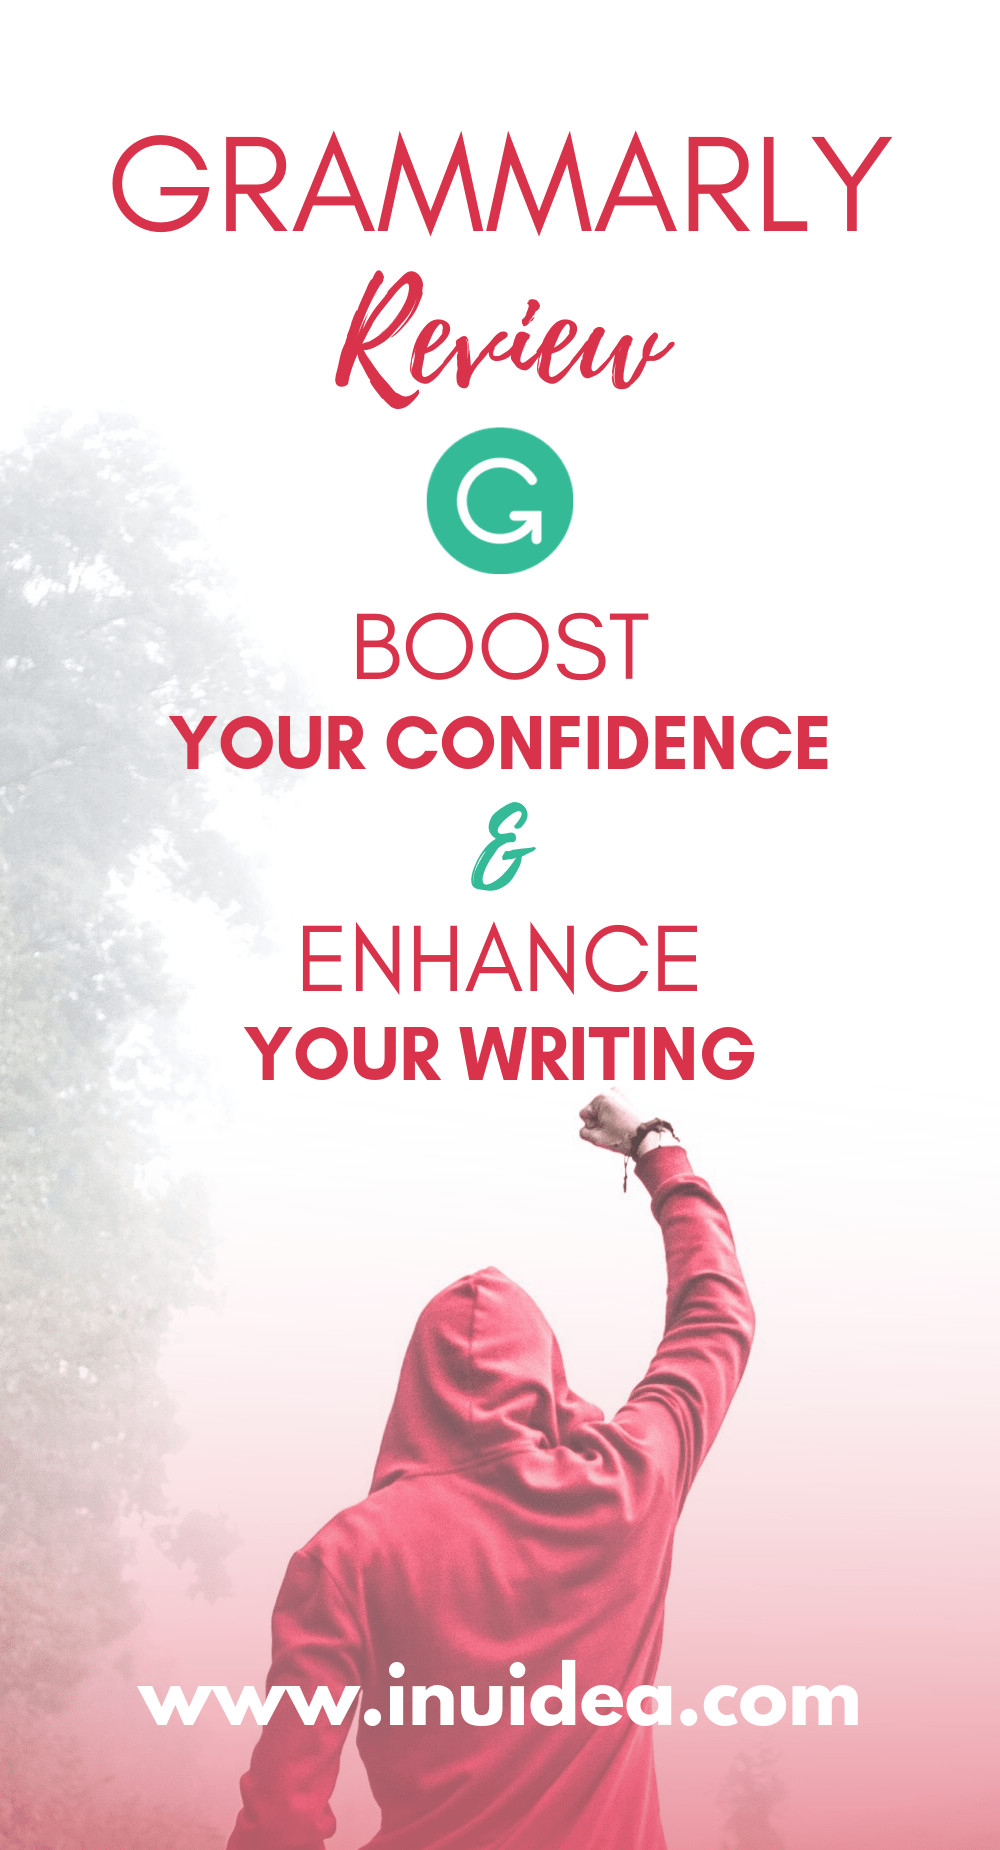 Grammarly Coupon Promo Code